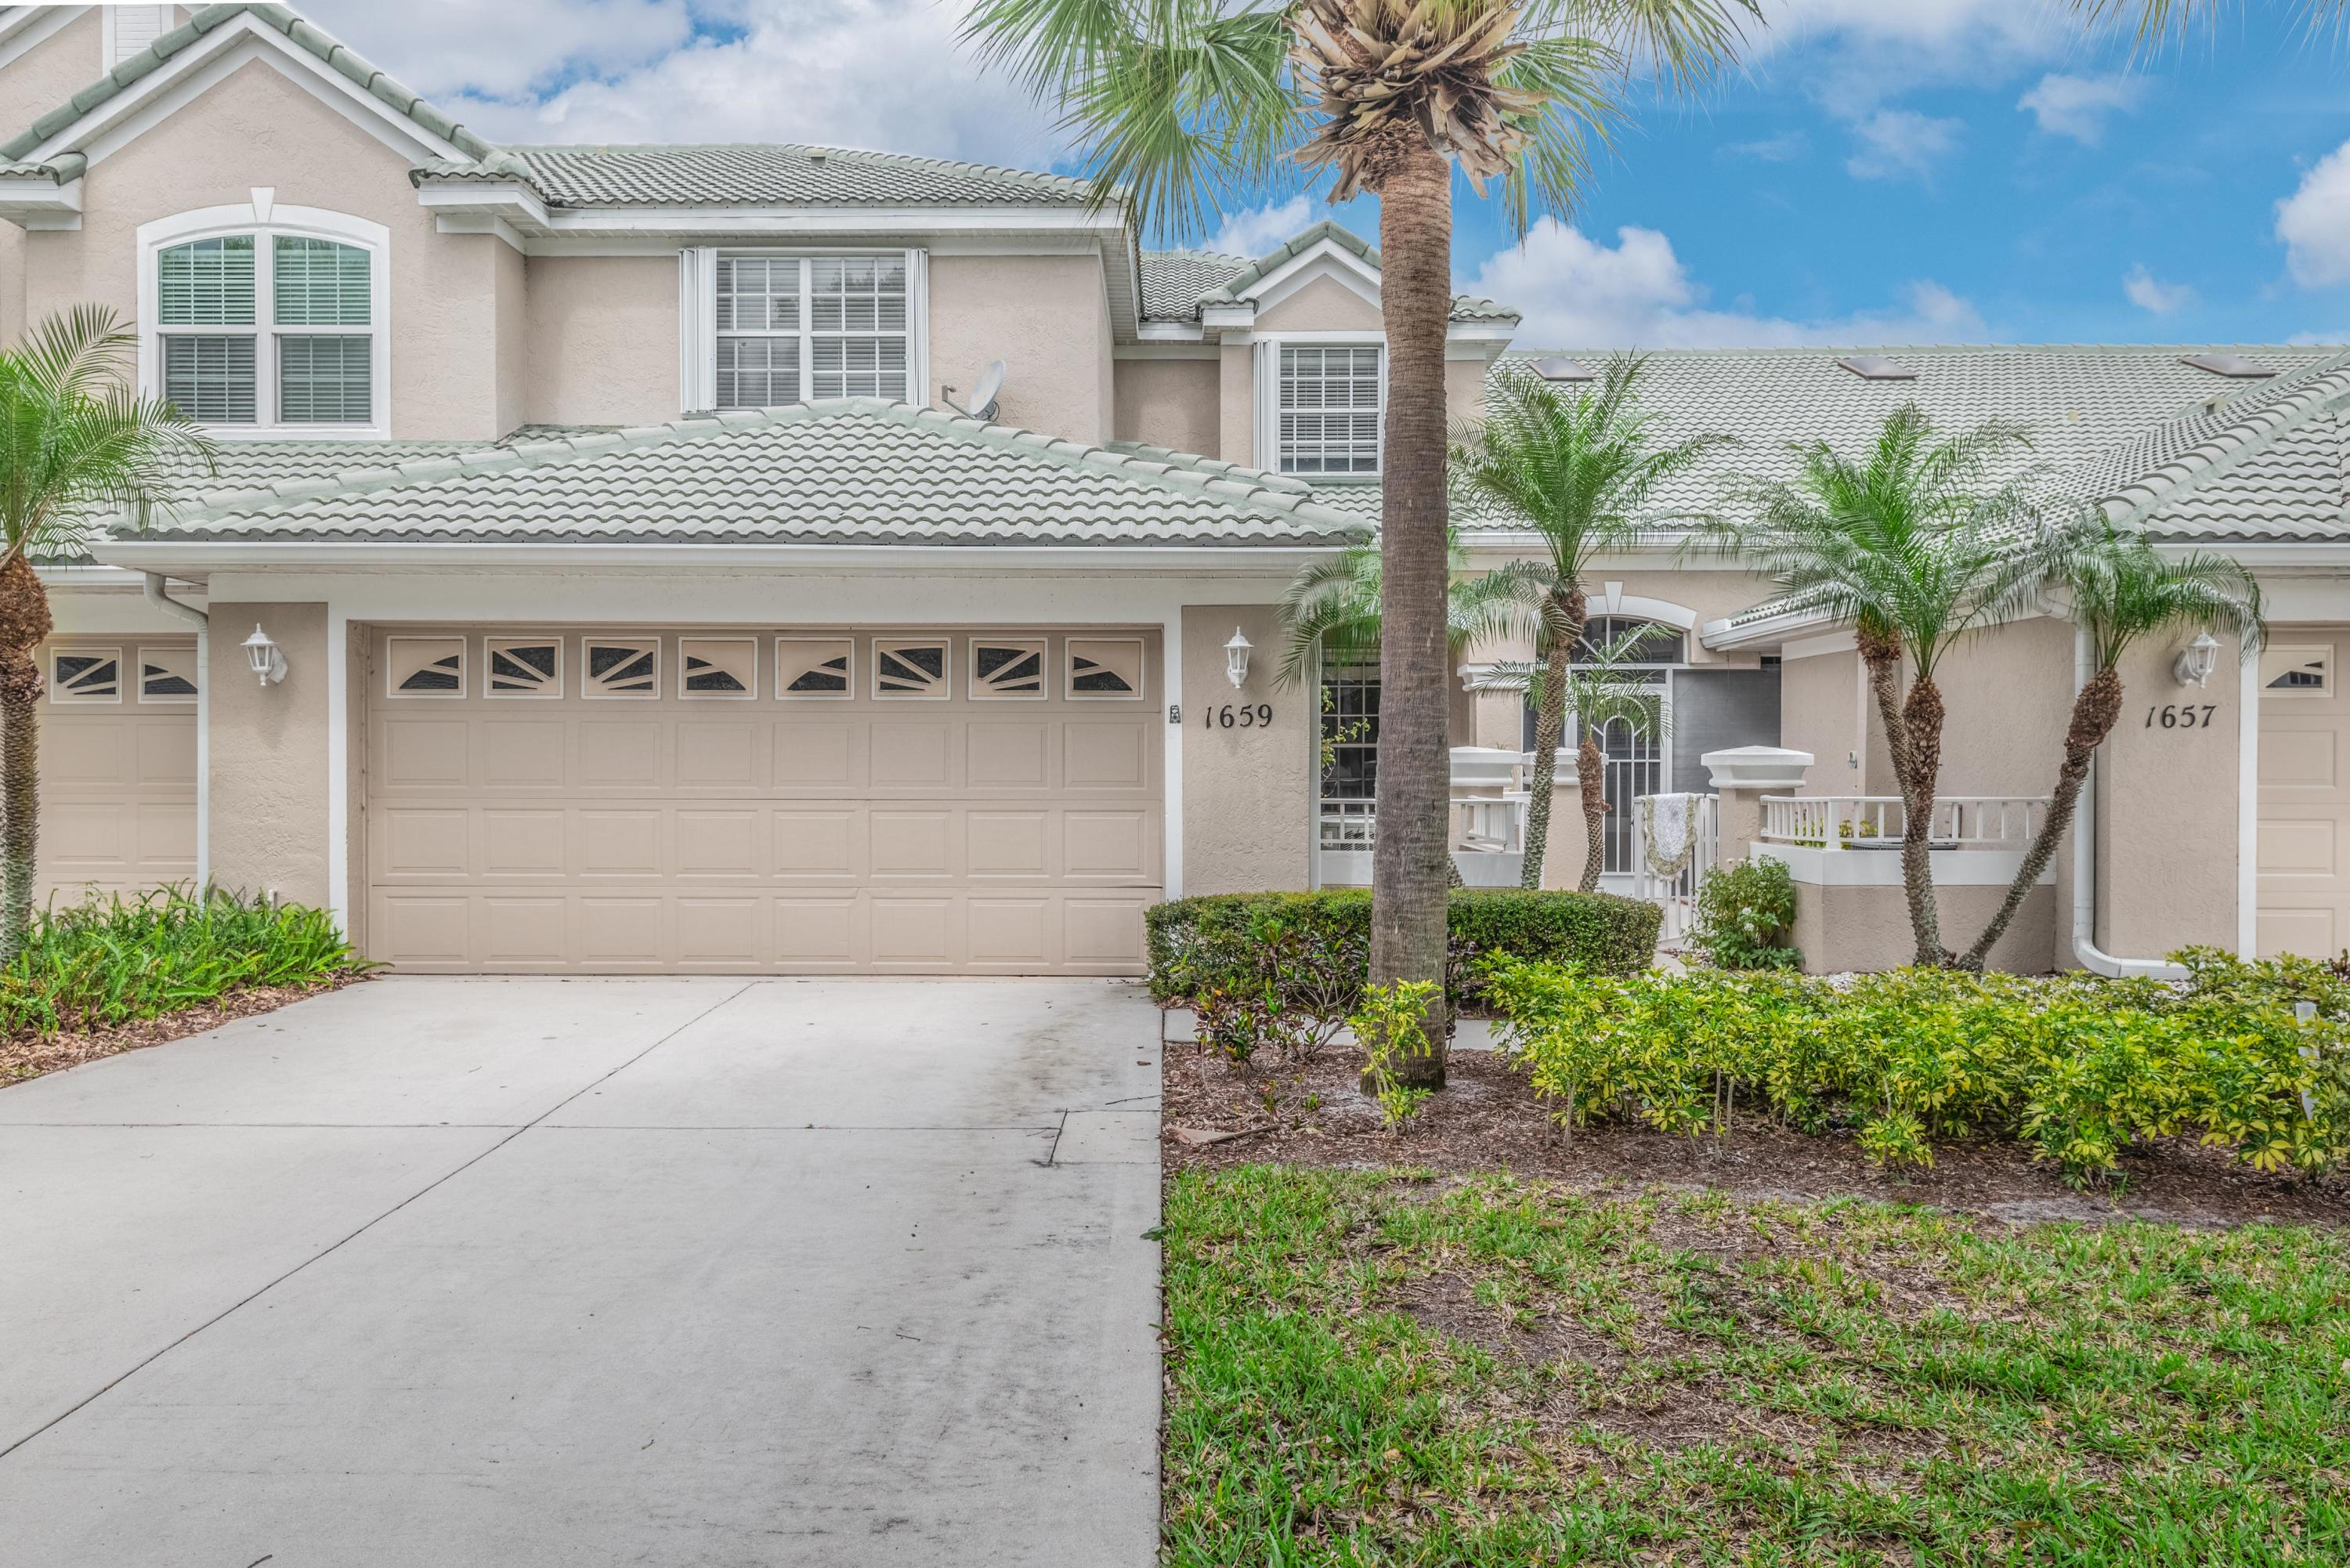 Port Saint Lucie Homes for Sale -  Waterfront,  1659 SW Harbour Isles Circle  20